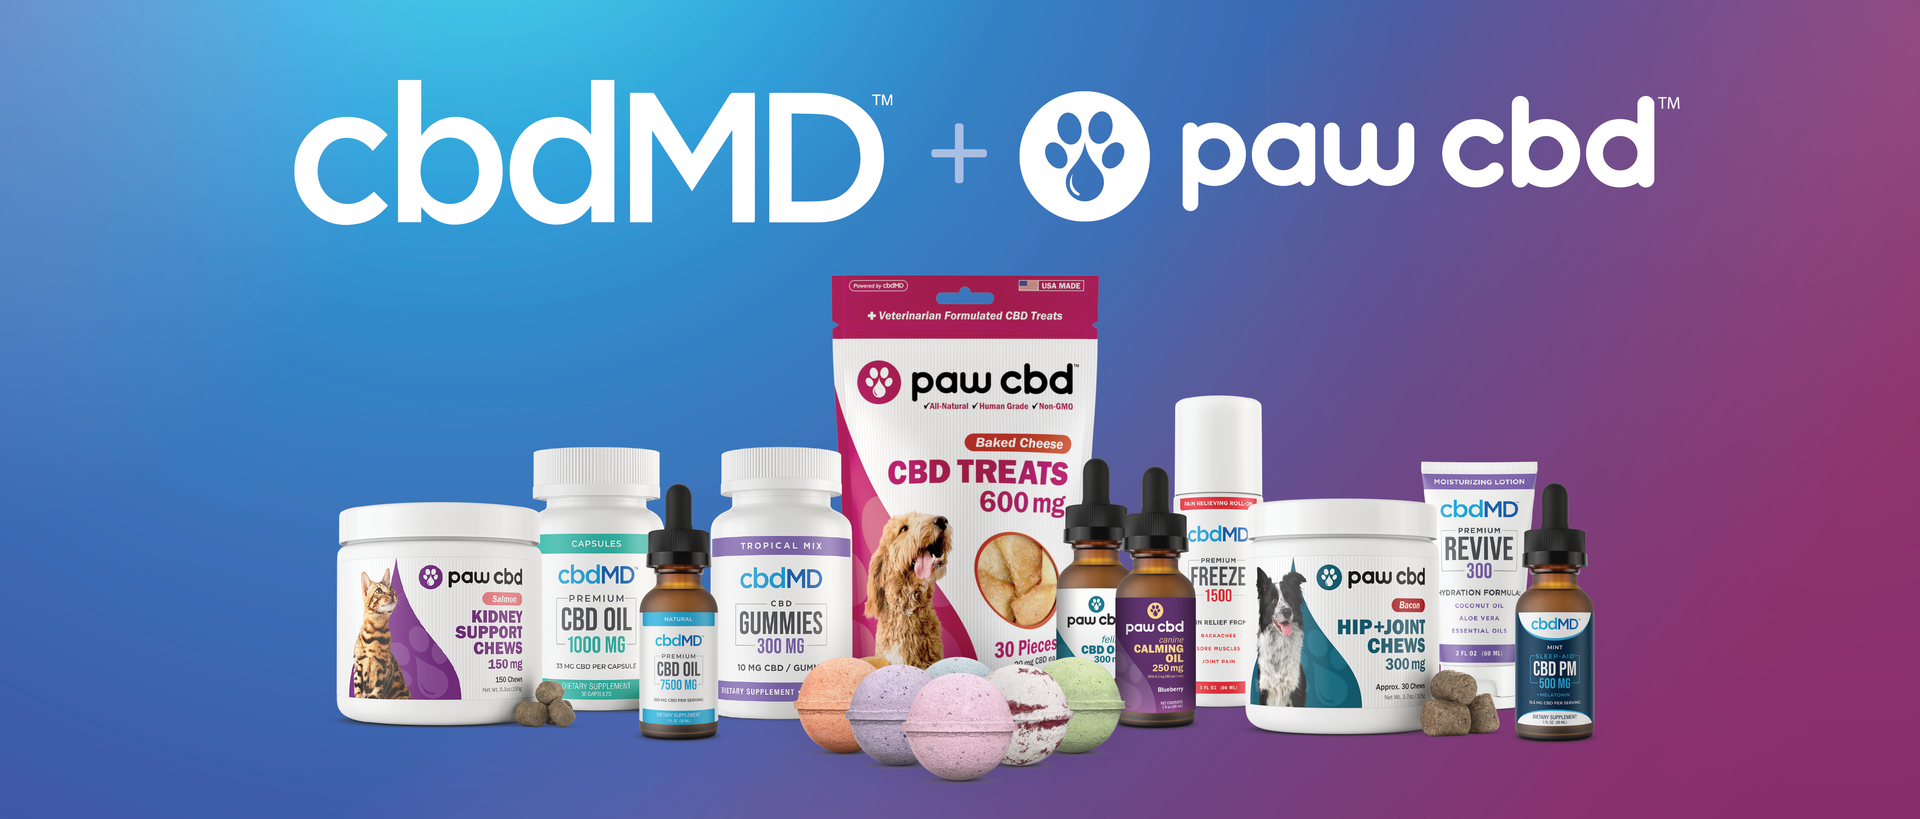 cbdMD & PawCBD are now available on the number 1 Original CBD Marketplace, CBDResellers.com | Real CBD. Simplified.©️Discover our THC-free, superior CBD products. Featuring award-winning, high-quality hemp oil by cbdMD.